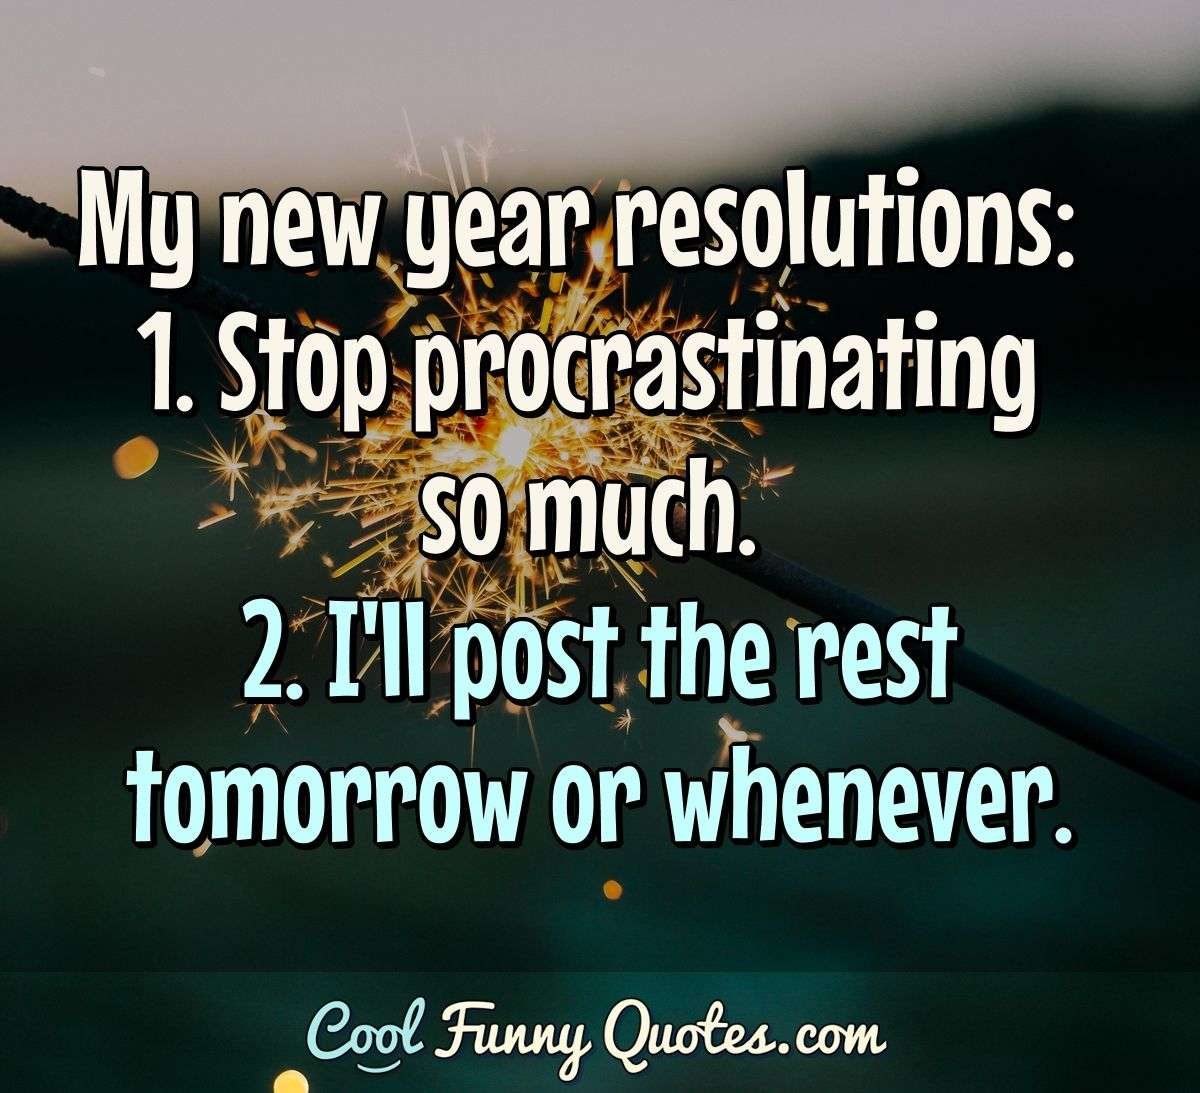 My new year resolutions:  1. Stop procrastinating so much. 2. I'll post the rest tomorrow or whenever. - Anonymous